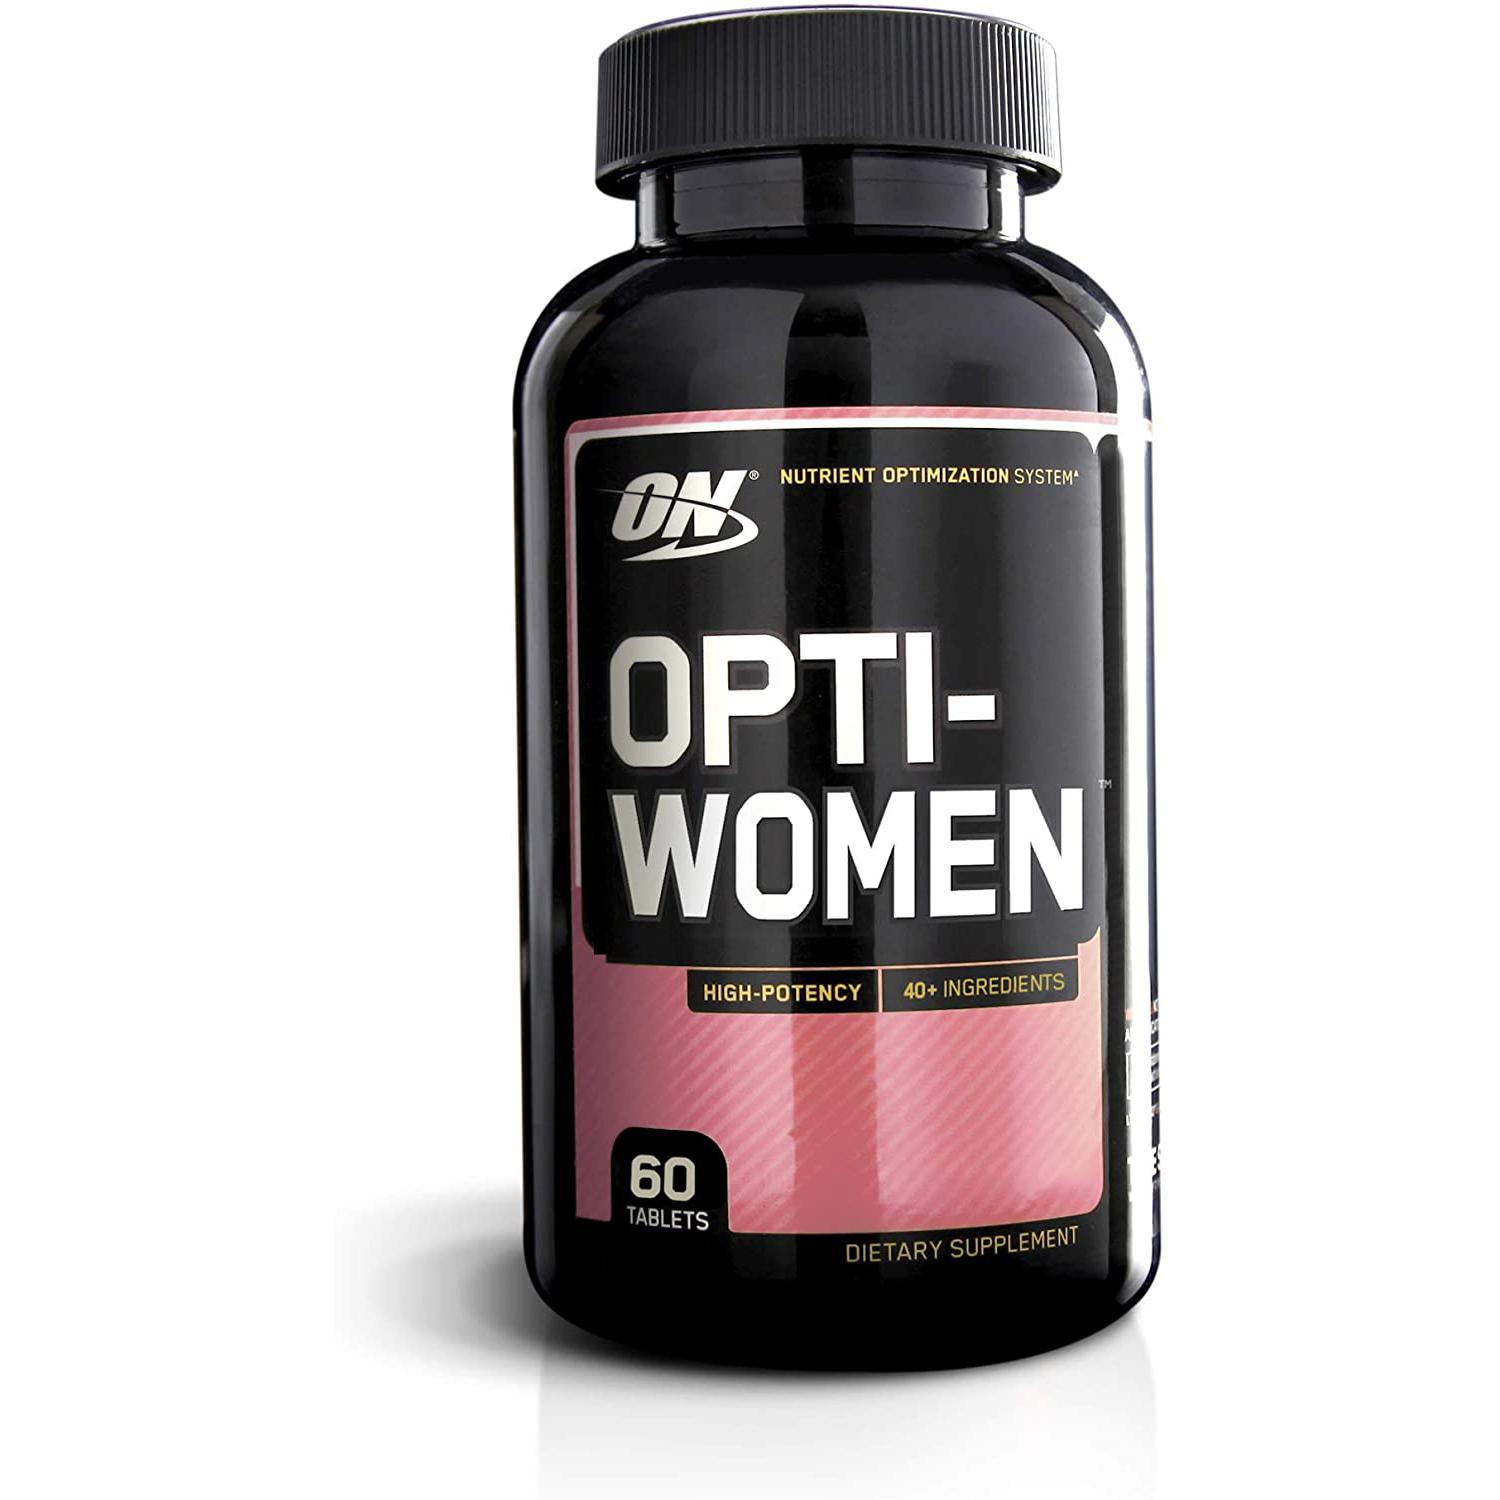 Optimum Nutrition Opti-Women, Vitamin C, Zinc and Vitamin D for Immune Support Womens Daily Multivitamin Supplement with Iron, Capsules, 60 Count